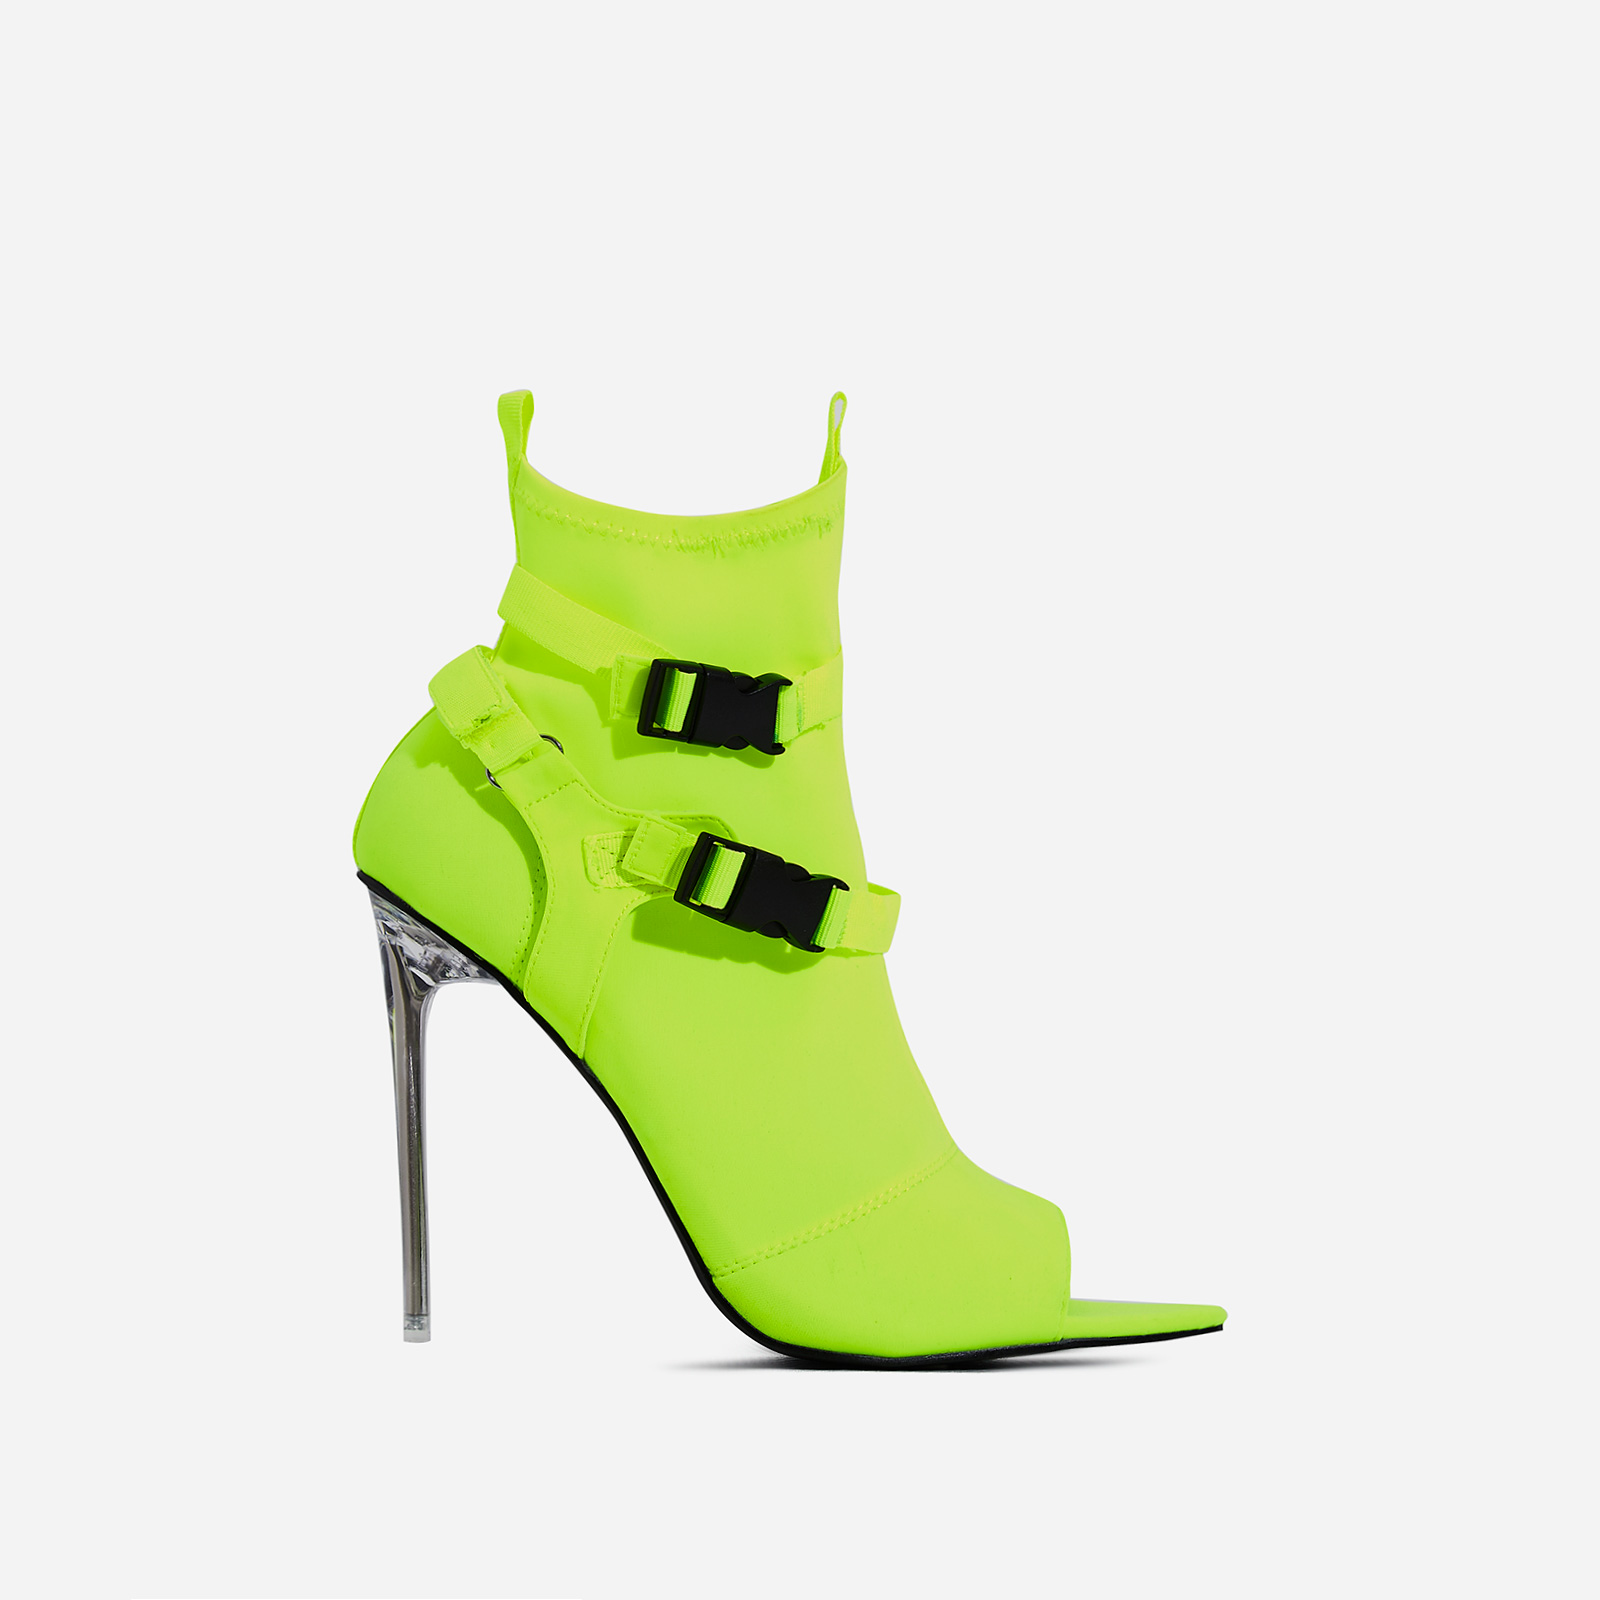 Lit Perspex Buckle Detail Pointed Peep Toe Ankle Sock Boot In Green Lycra